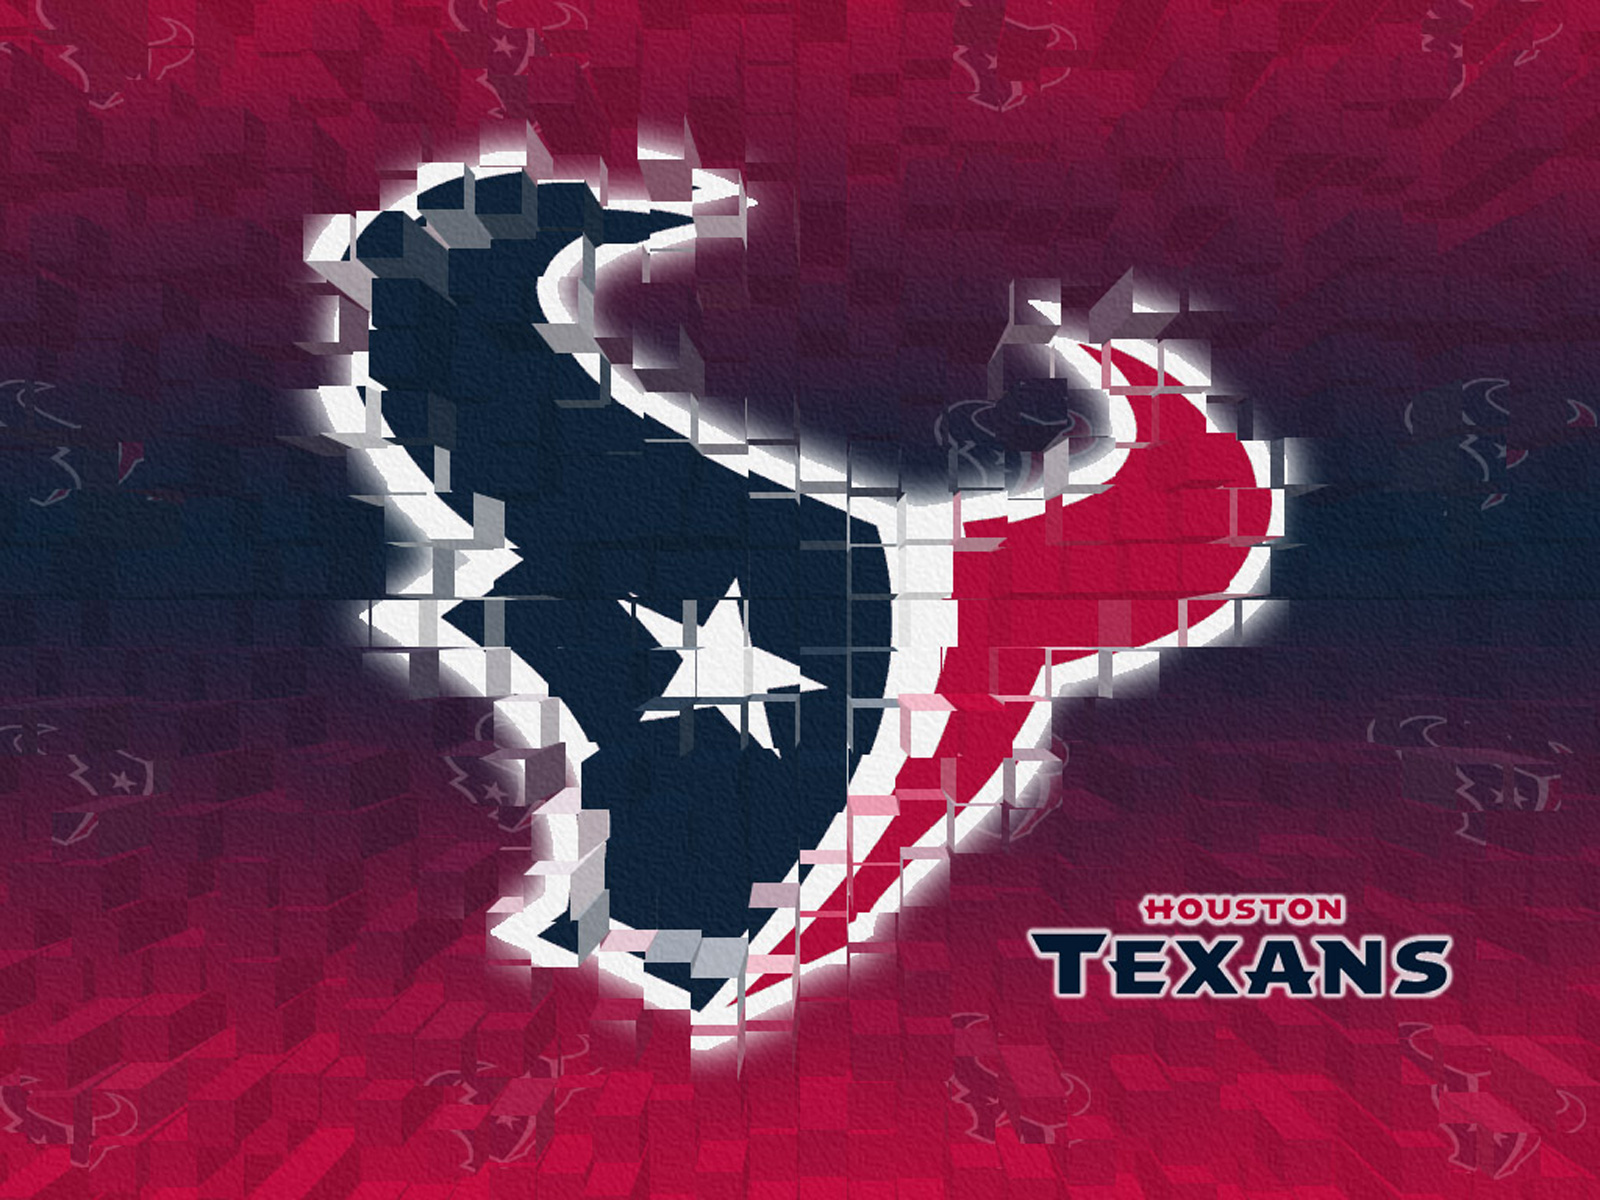 3D logo NFL Houston Texans wallpaper 1600x1200